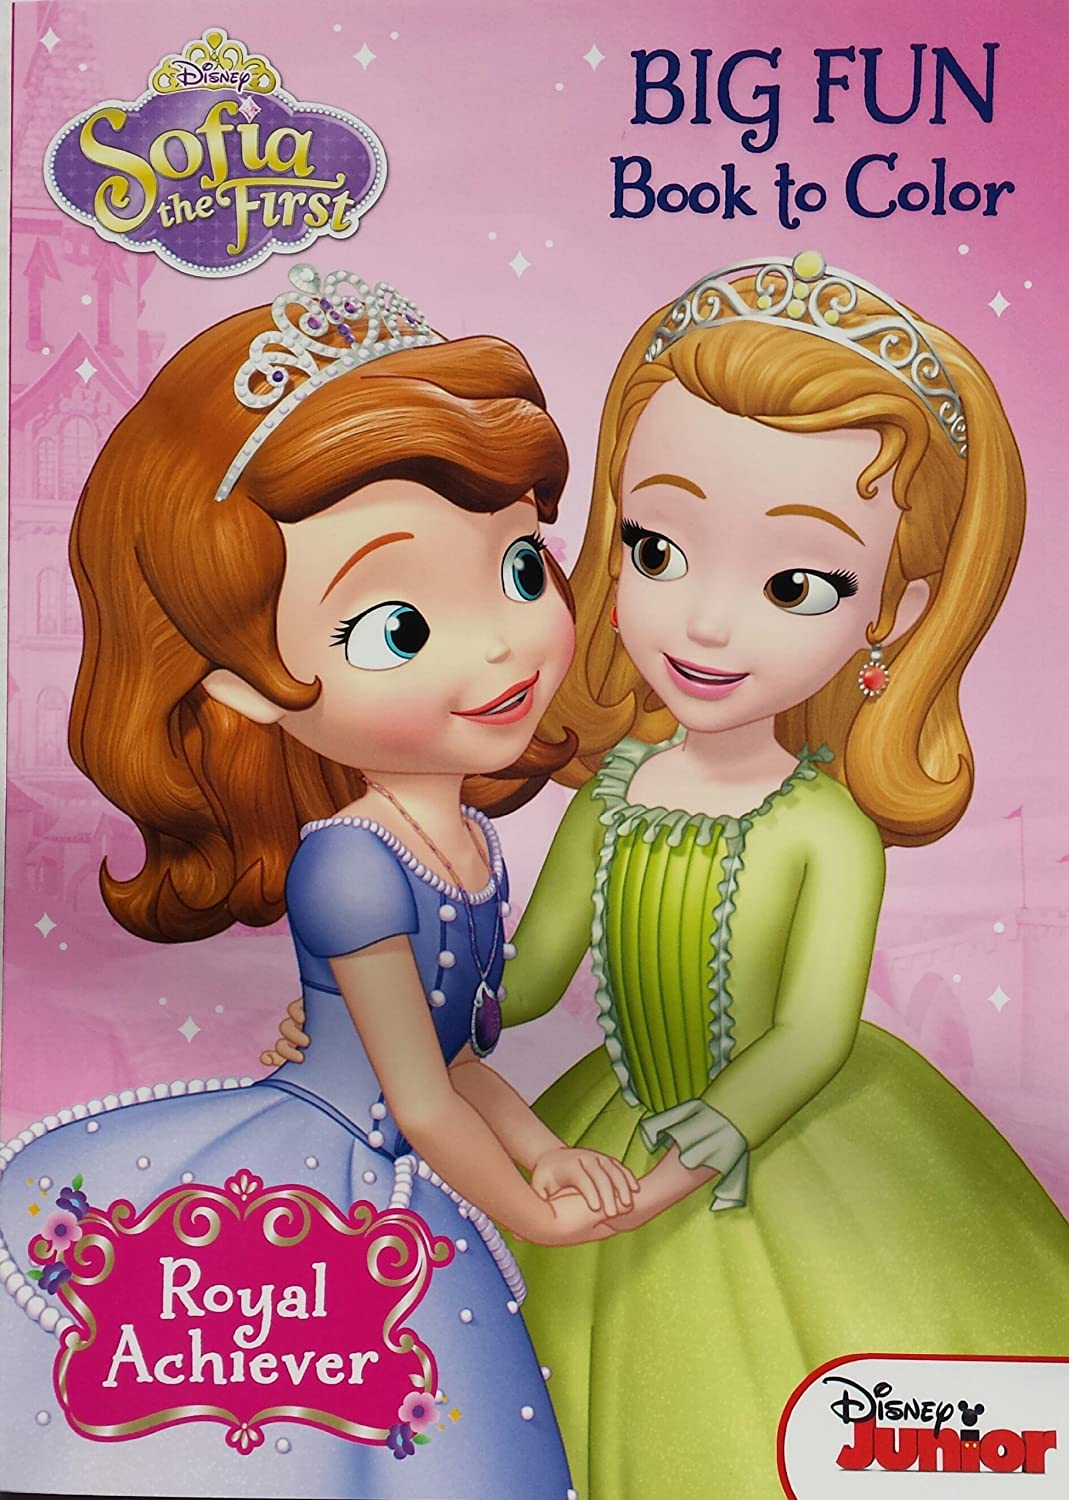 Disney Princess Sofia The